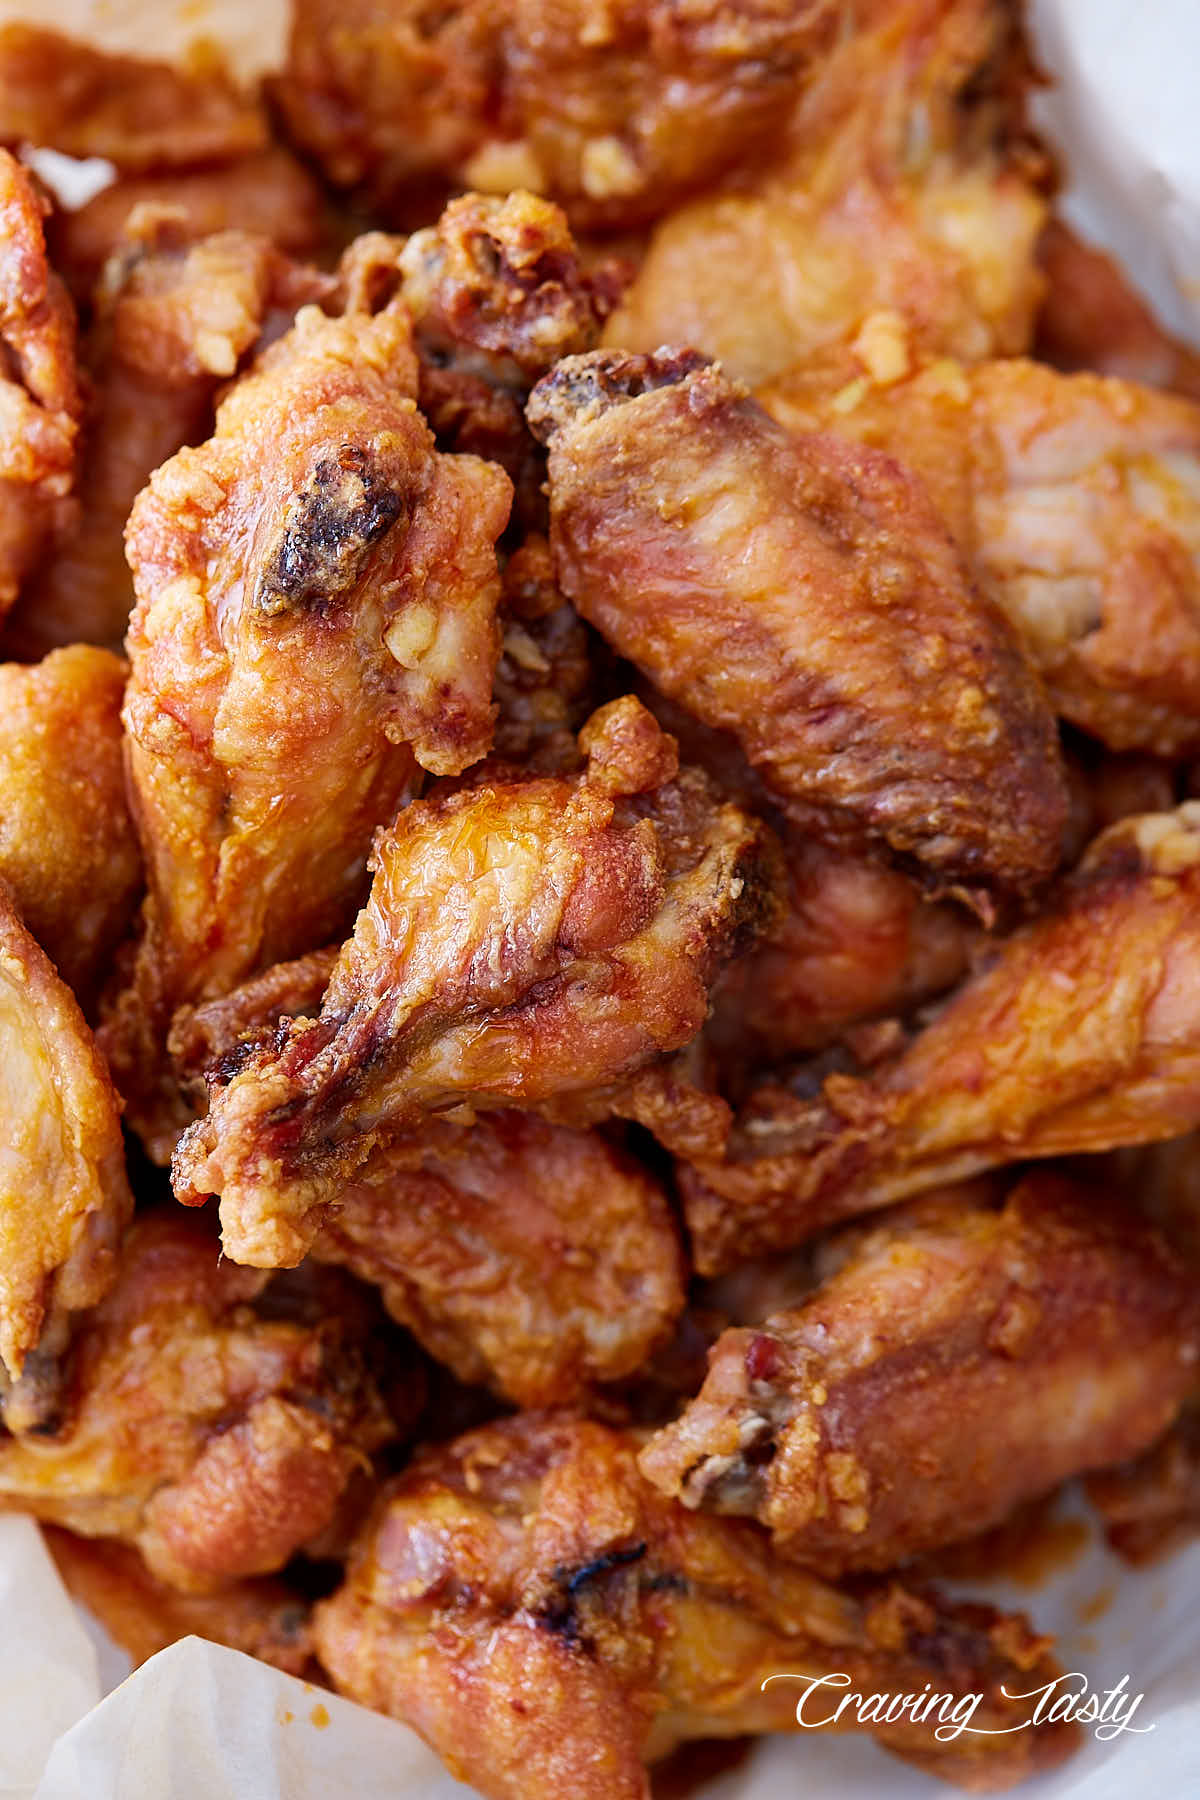 Extra Crispy Baked Chicken Wings Craving Tasty